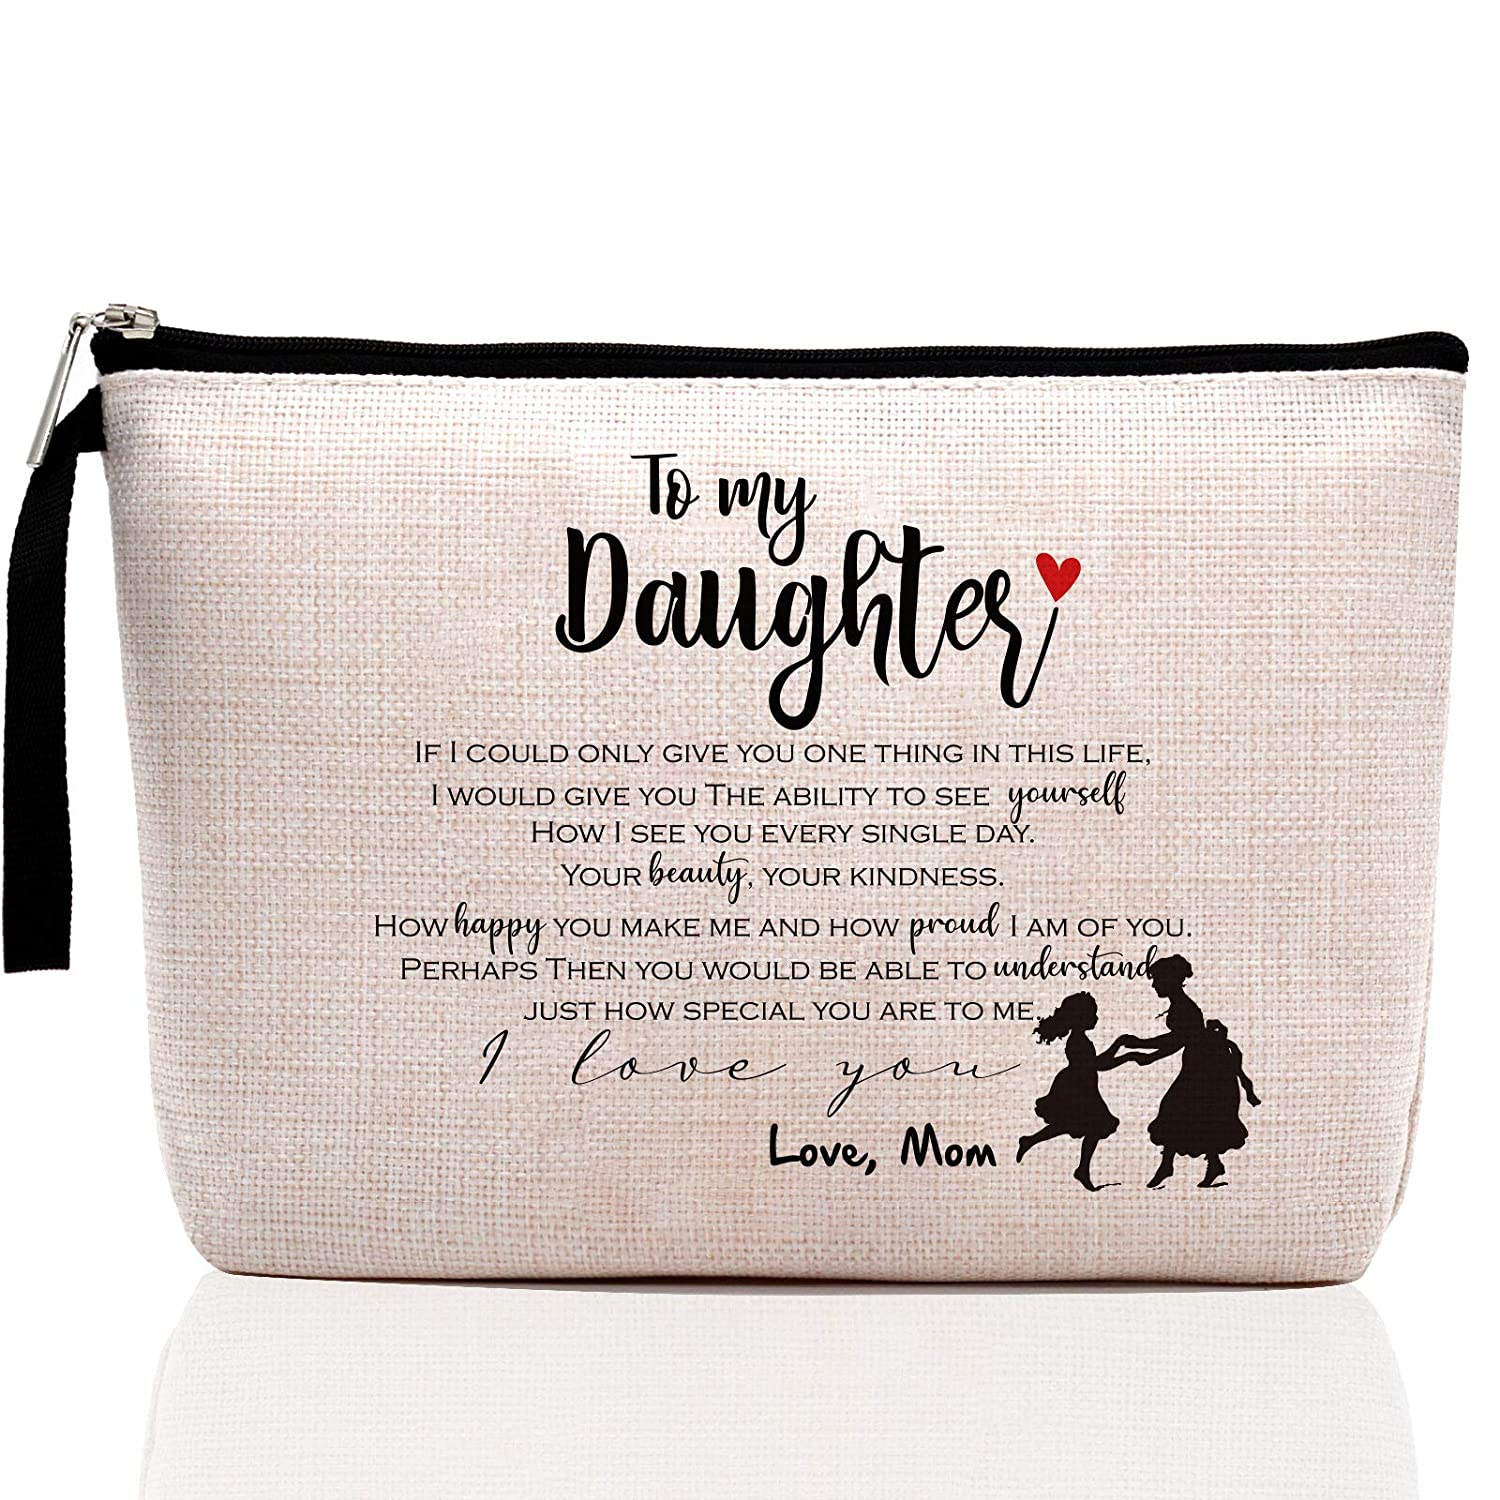 Daughter Gifts from Mom, Daughter Birthday Gifts, Daughter in Law Gifts, Graduation Gifts for Her, Sentimental Gifts for Daughter, Makeup Bag, Pencil Case